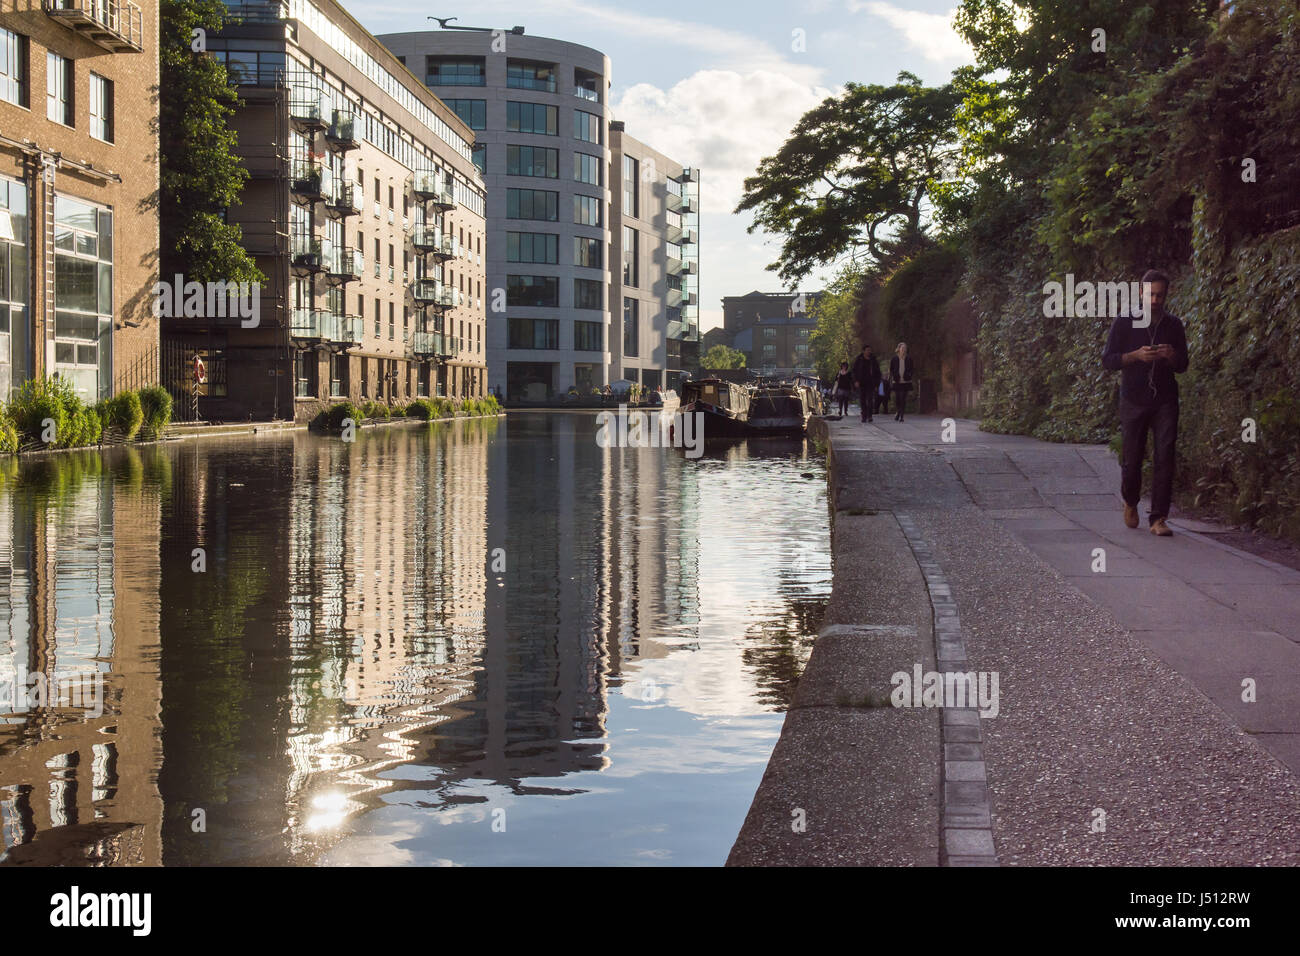 London, England - June 20, 2016: Pedestrians walk on the towpath of the Regent's Canal near King's Cross - Stock Image